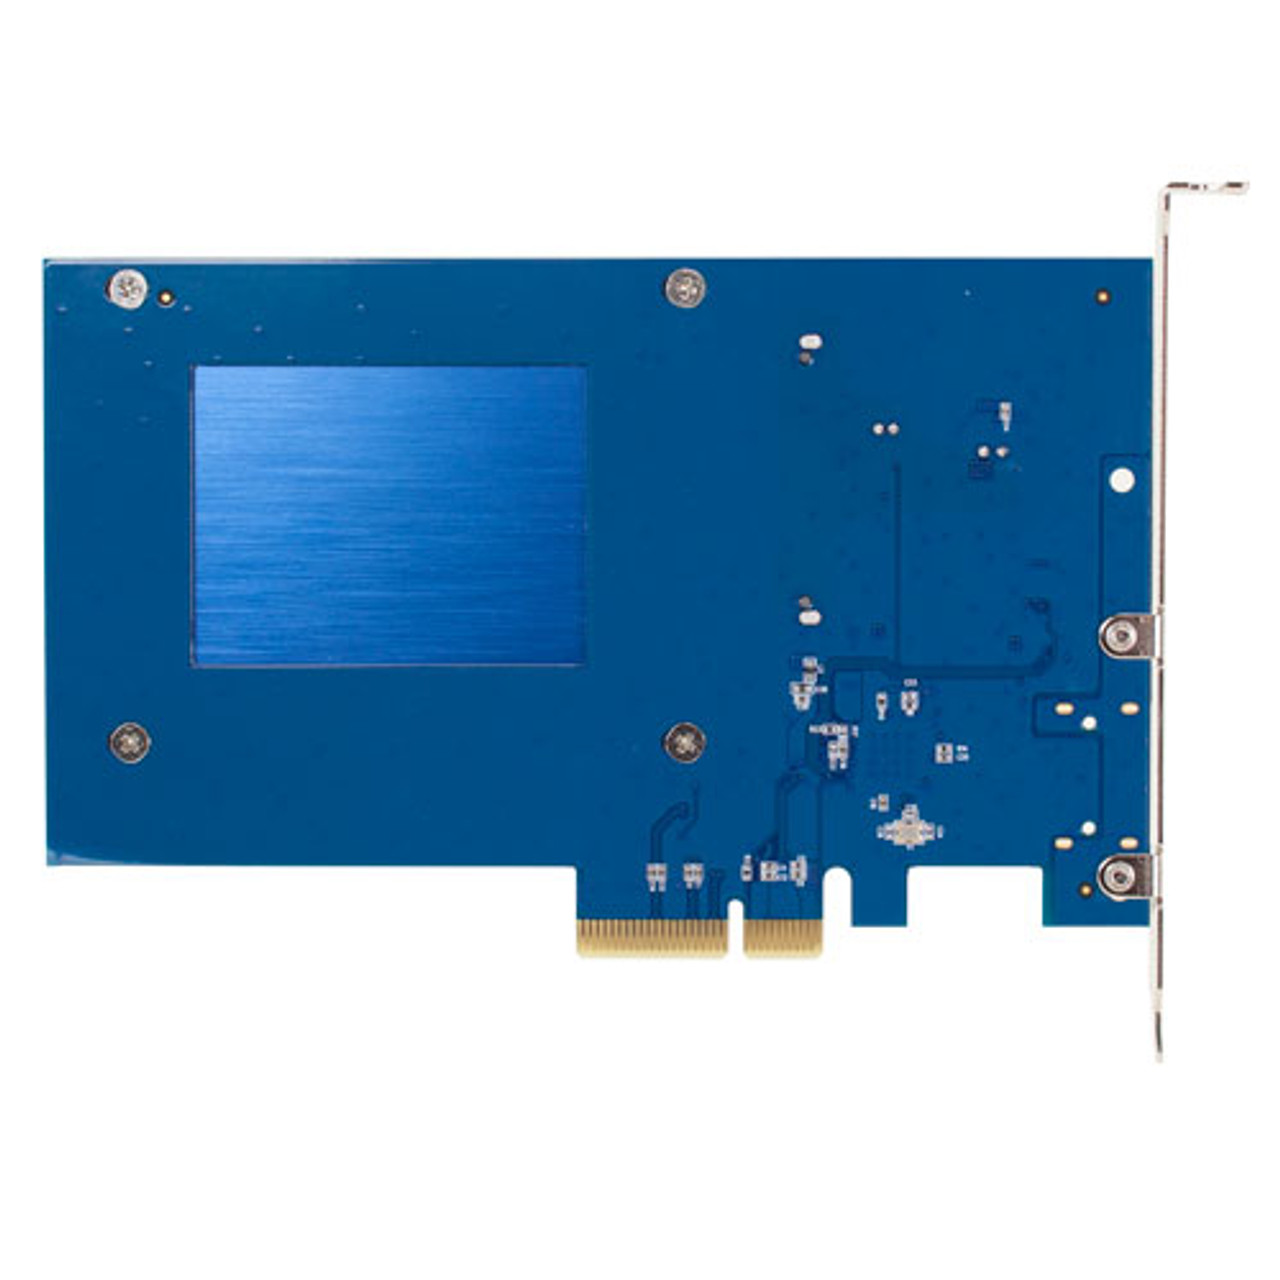 240GB OWC Extreme 6G SSD and OWC Accelsior S PCIe to 2.5-inch adapter bundle